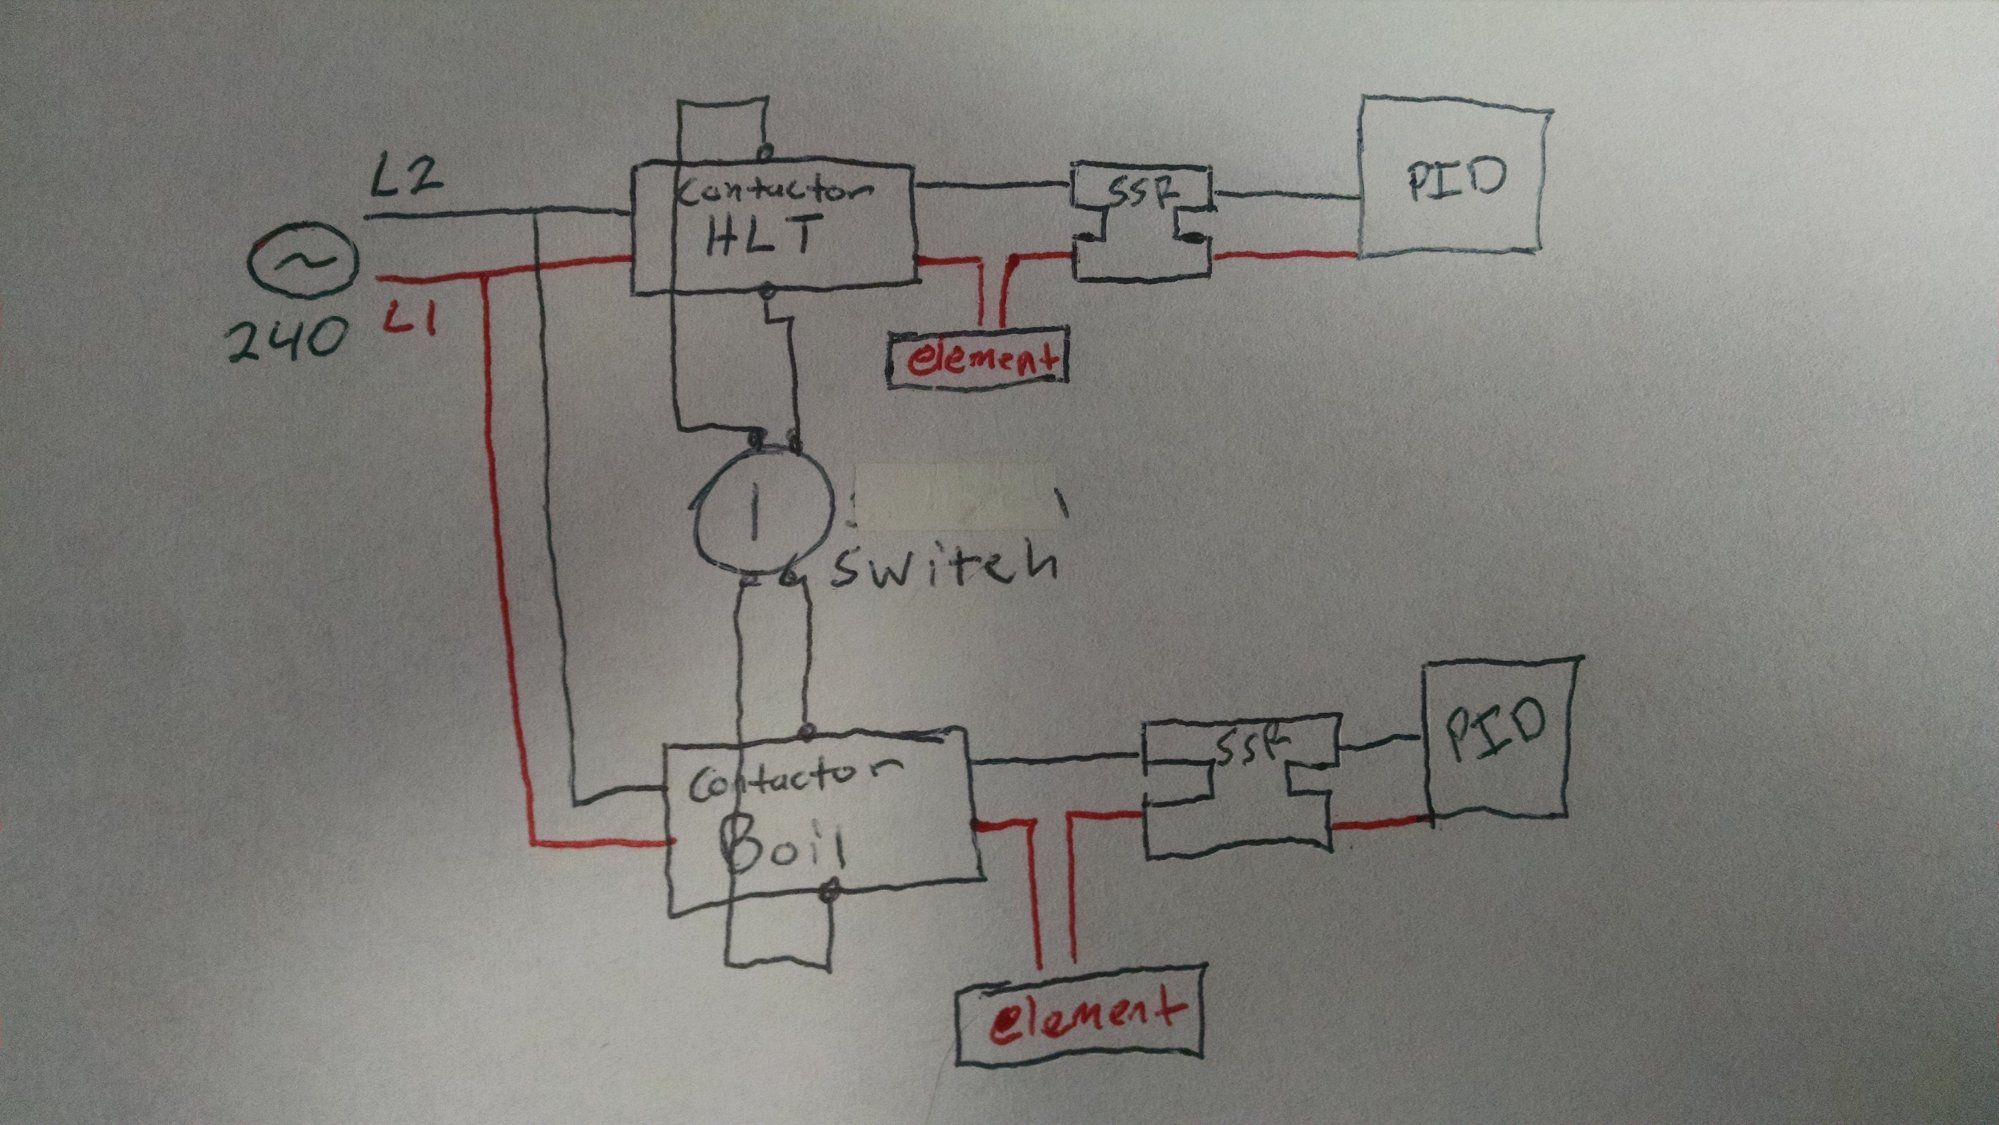 hight resolution of electrical contactor diagram kitchen on circuit diagram contactor parts